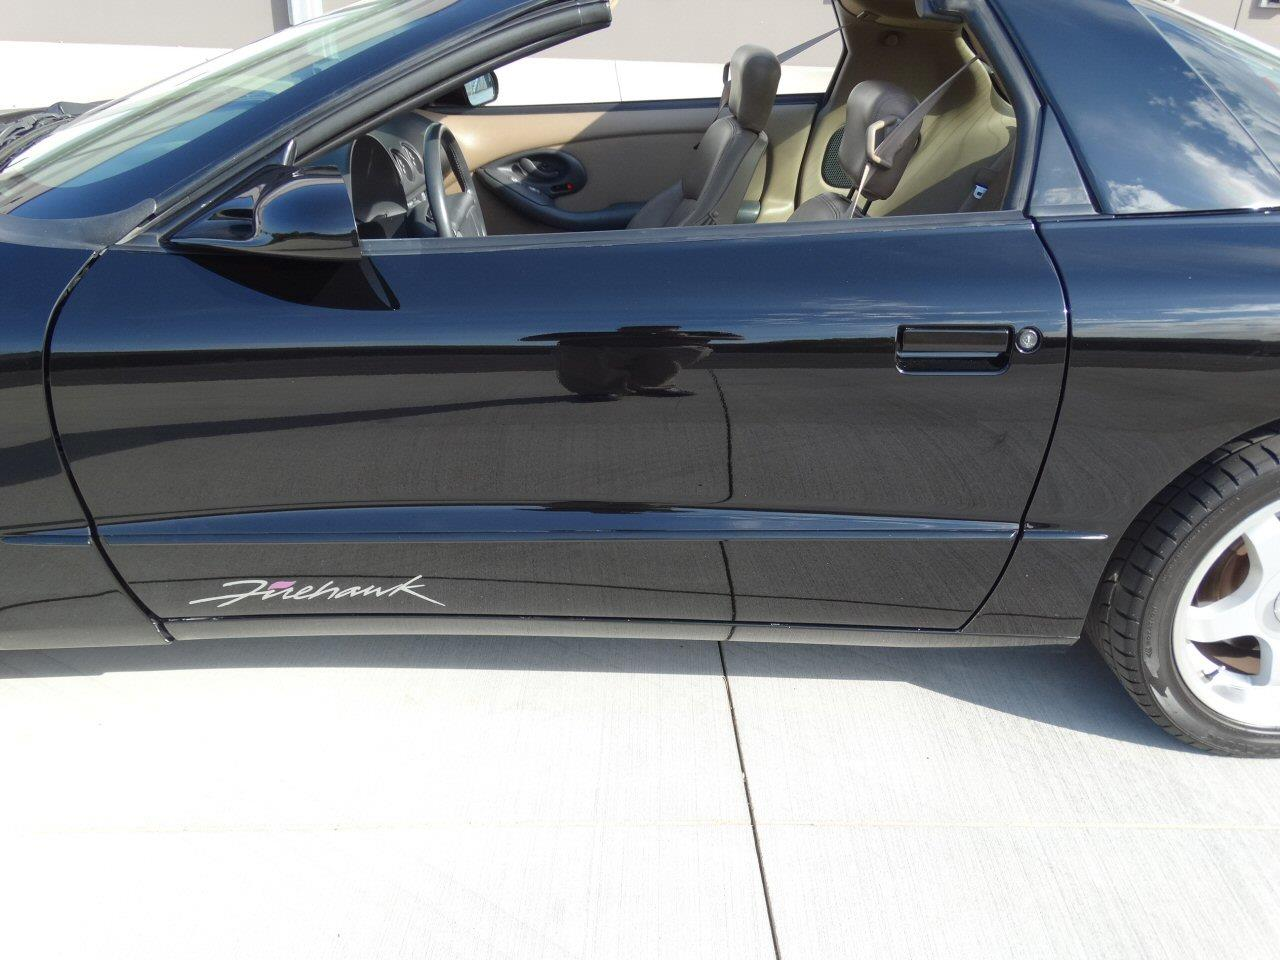 Large Picture of '94 Firebird located in Georgia - $20,995.00 Offered by Gateway Classic Cars - Atlanta - KF4C